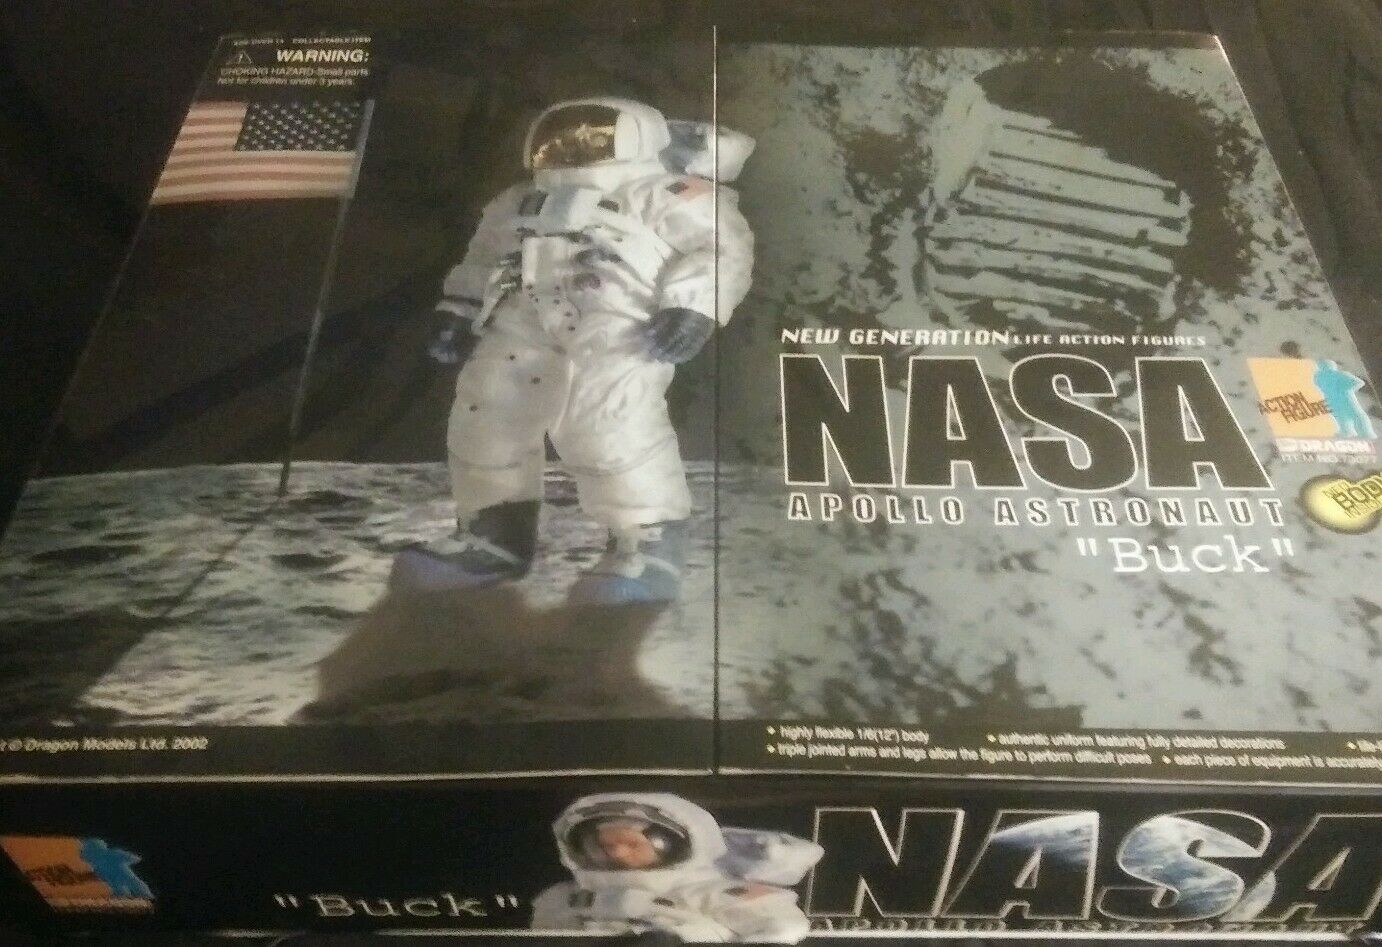 Dragon Action Figure, Buck Nasa Astronaut